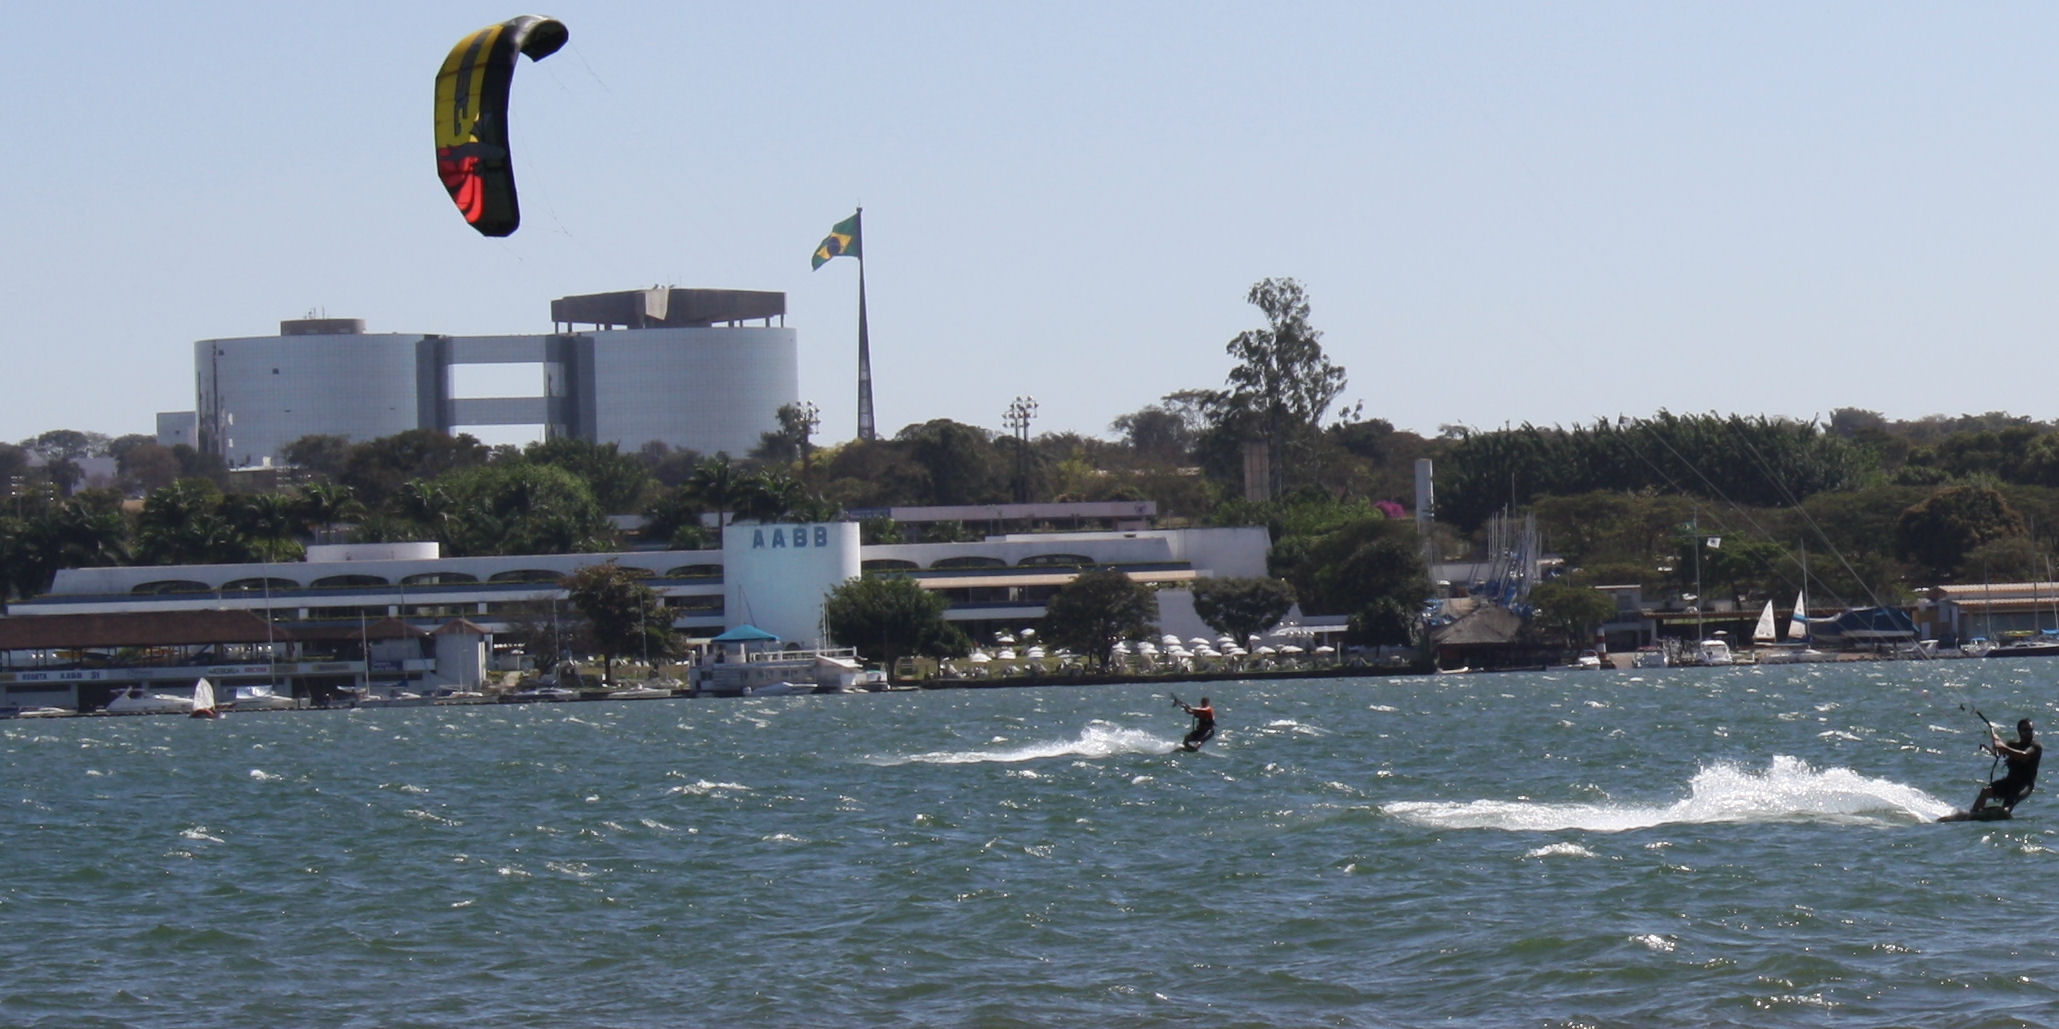 Wind surfers on Lake Paranoa in Brasilia with Brazilian flag in background